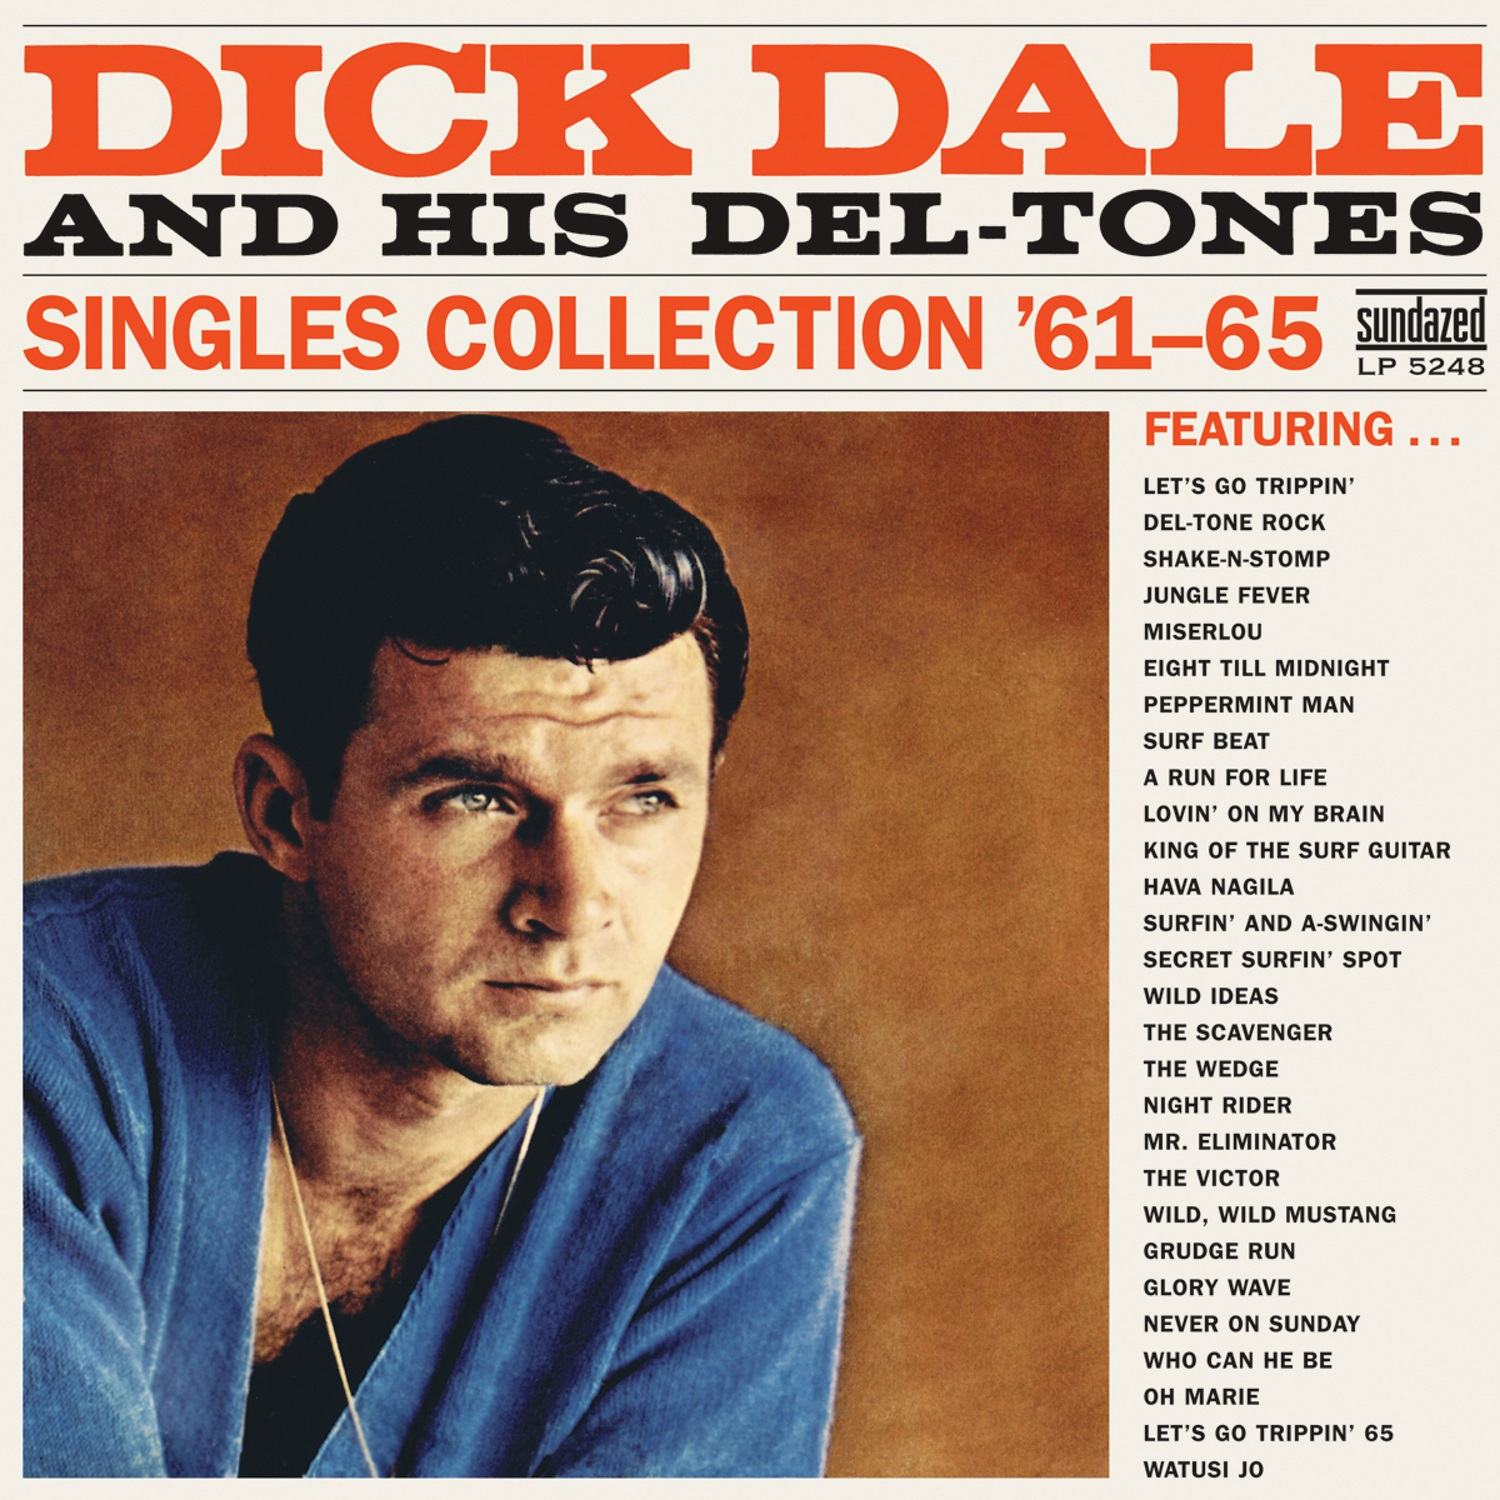 Dick Dale and His Del-Tones - Singles Collection 61-65 MONO 2-LP Set